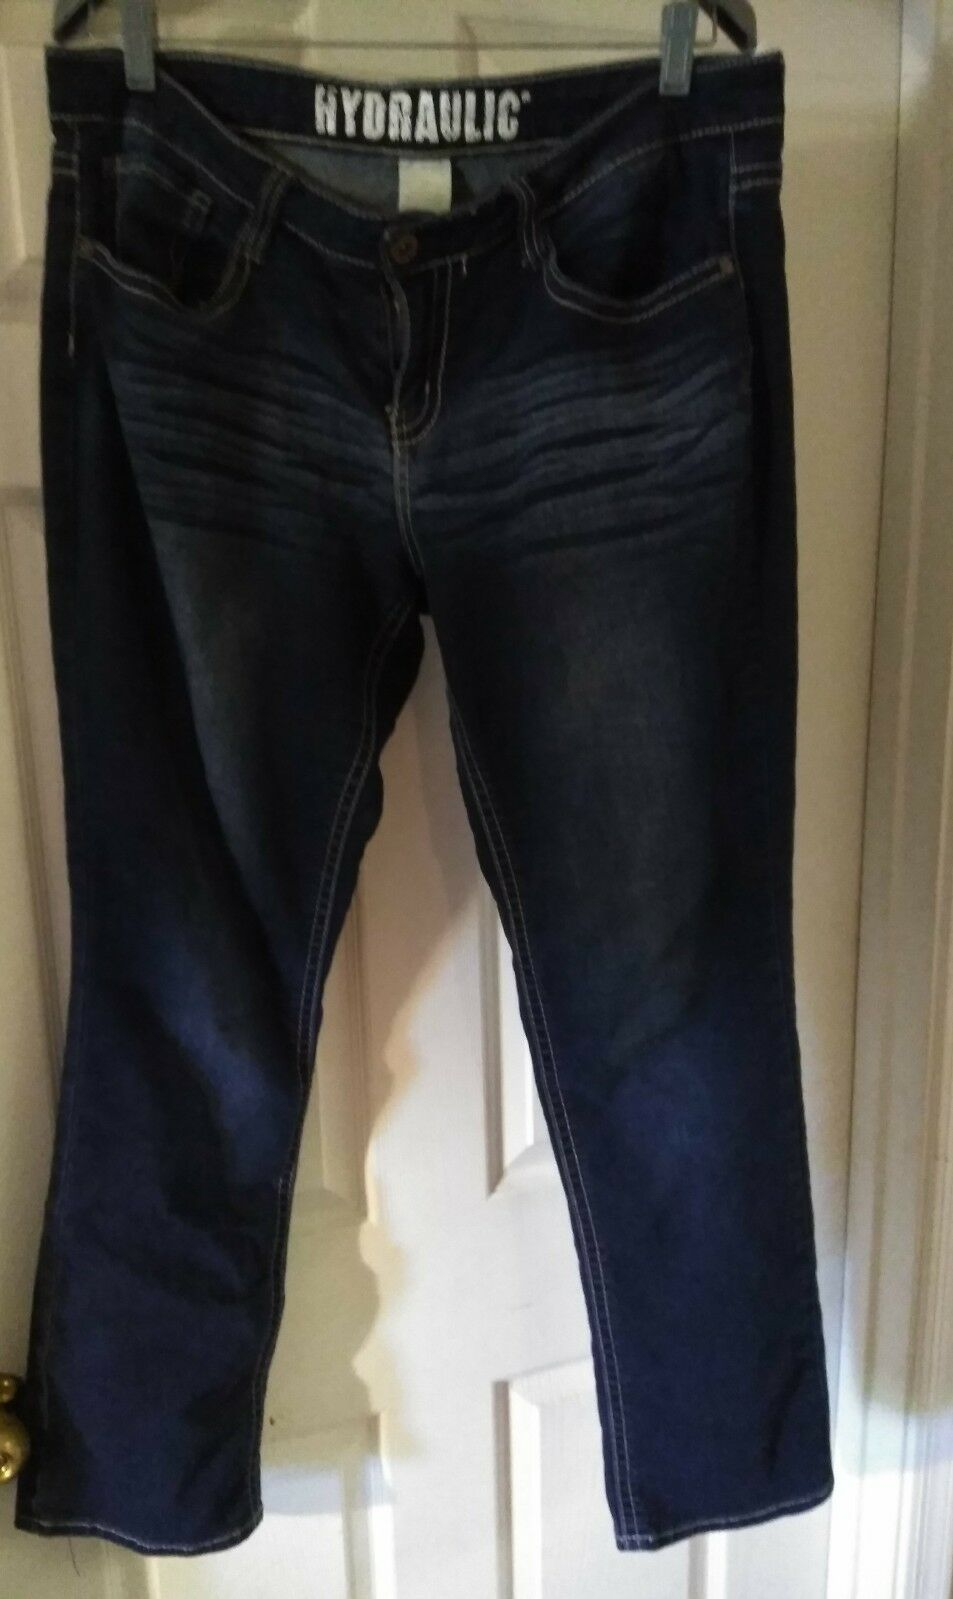 WOMEN'S HYDRAULIC STRETCH DARK blueE DENIM JEANS PLUS SIZE 16